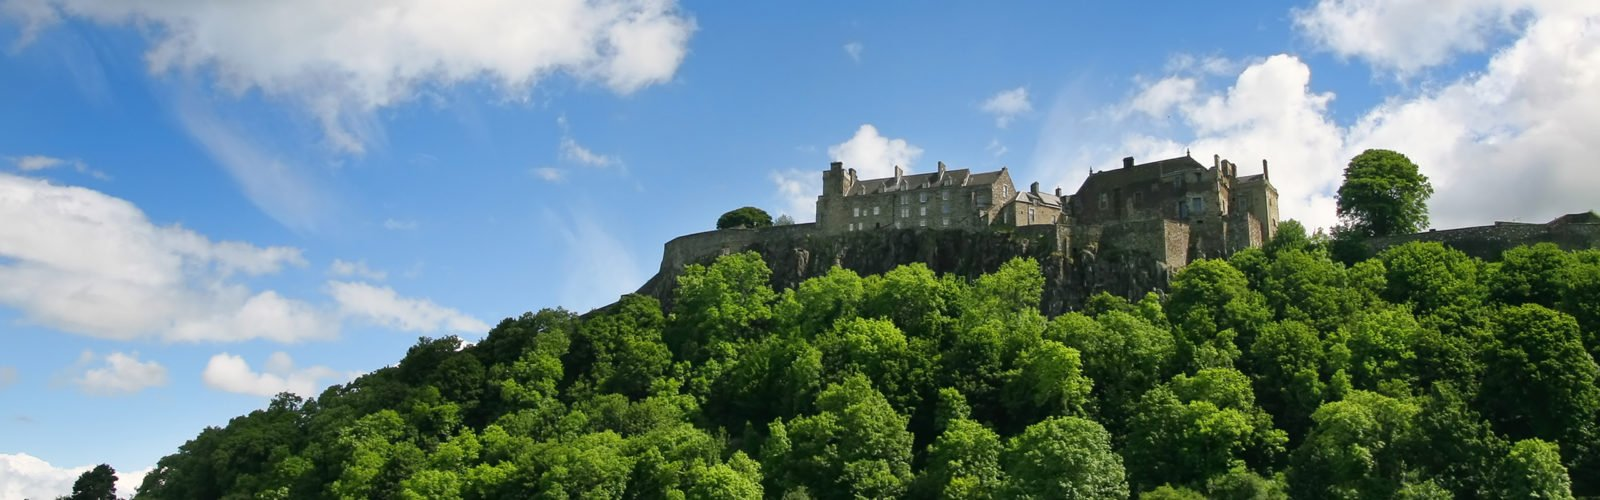 stirling-castle